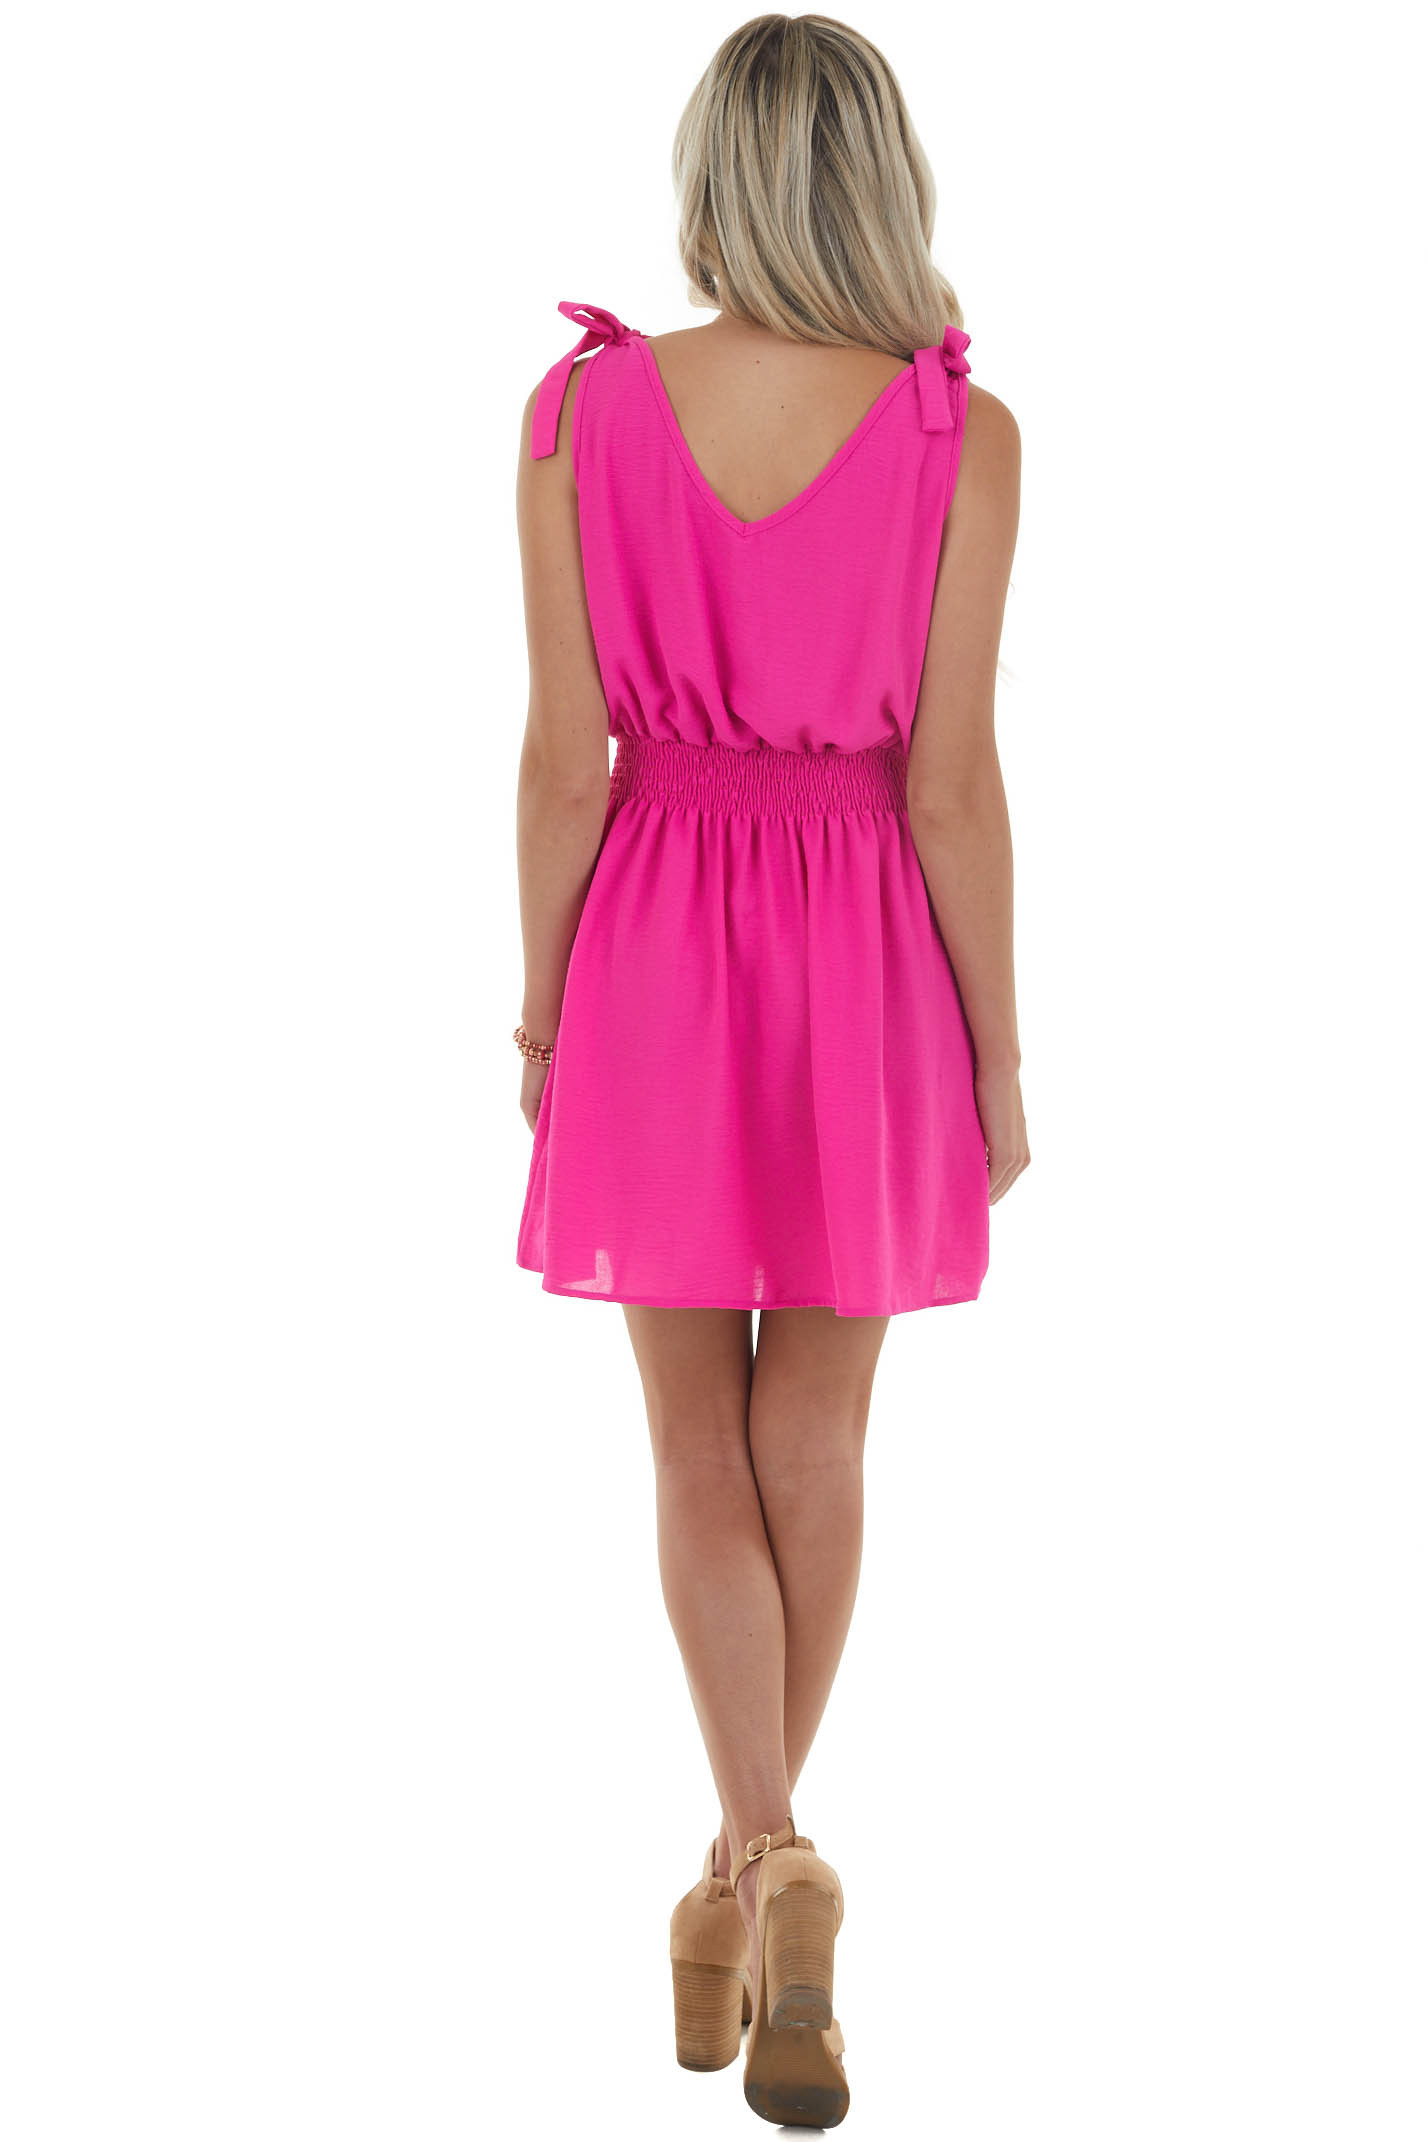 Mulberry Woven Dress with Smocked Waist and Tie Straps